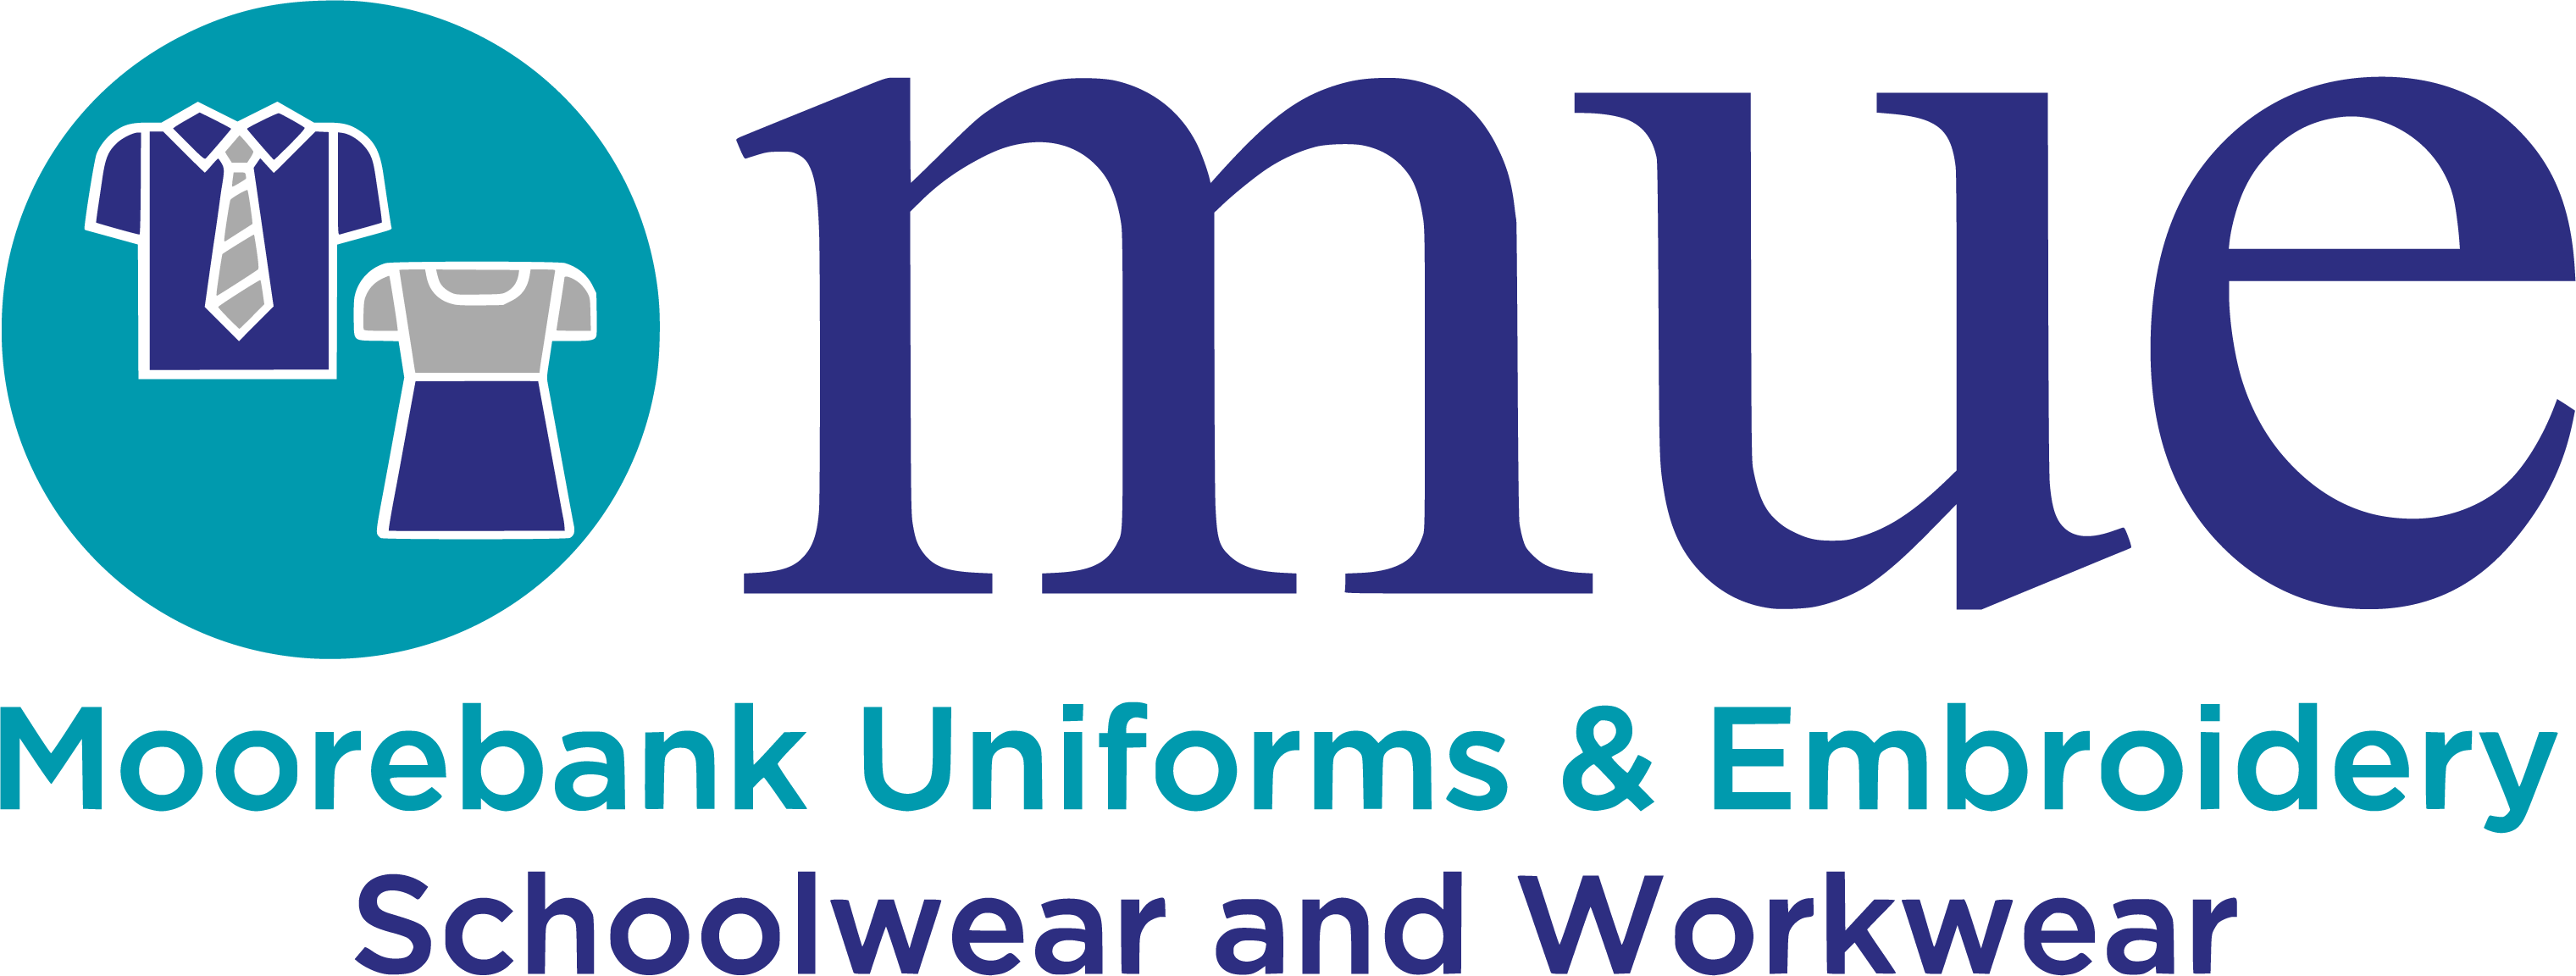 Moorebank Uniforms & Embroidery